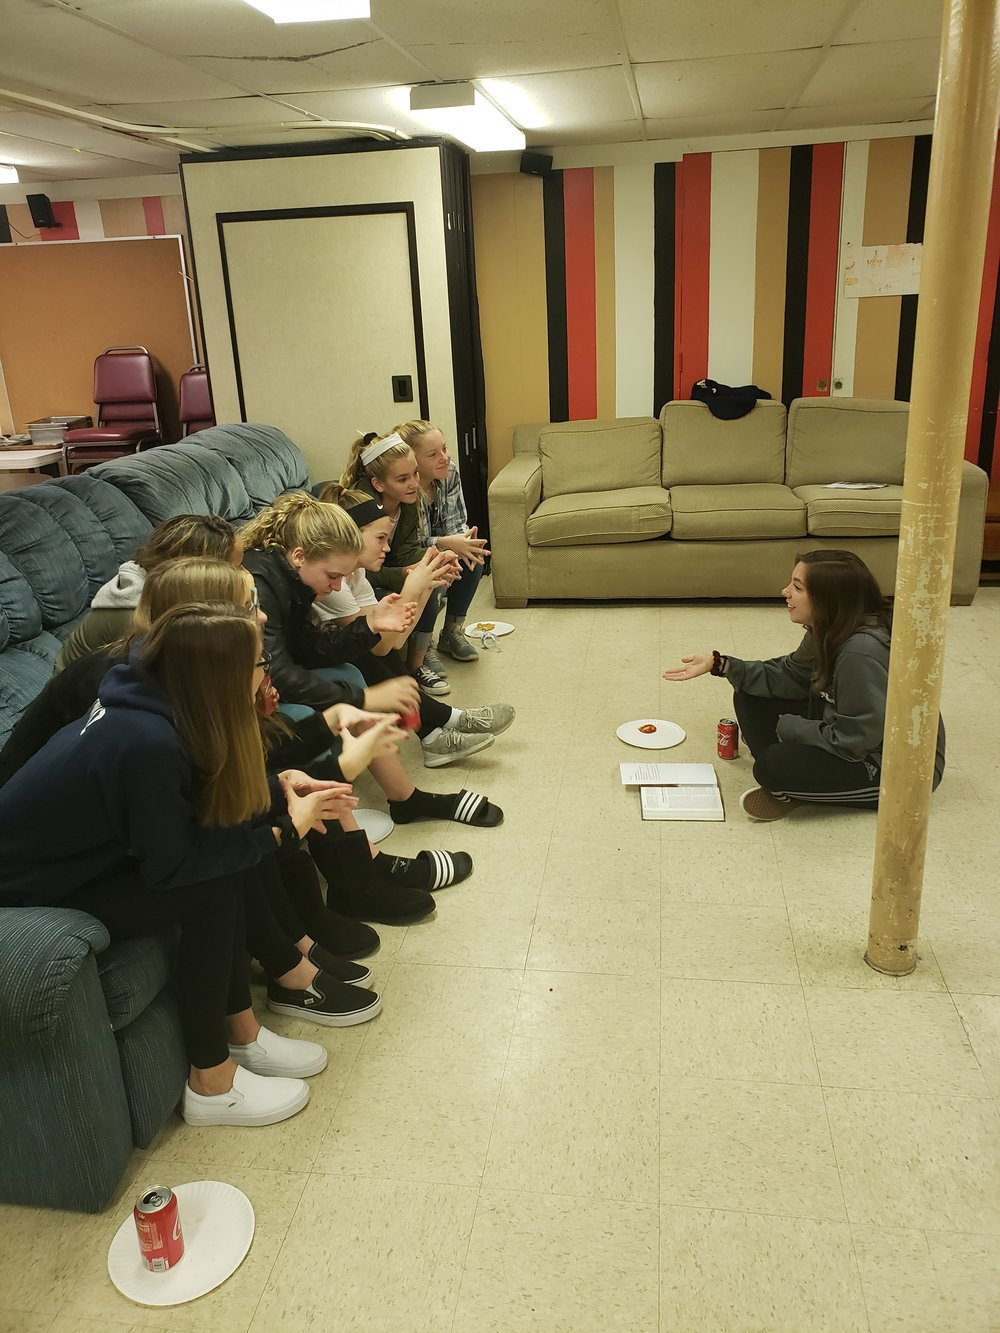 LISA SCHAEFER (RIGHT) IS ONE OF OUR HIGH SCHOOL SENIORS THAT COMES ON WED NIGHTS TO LEAD A SMALL GROUP!